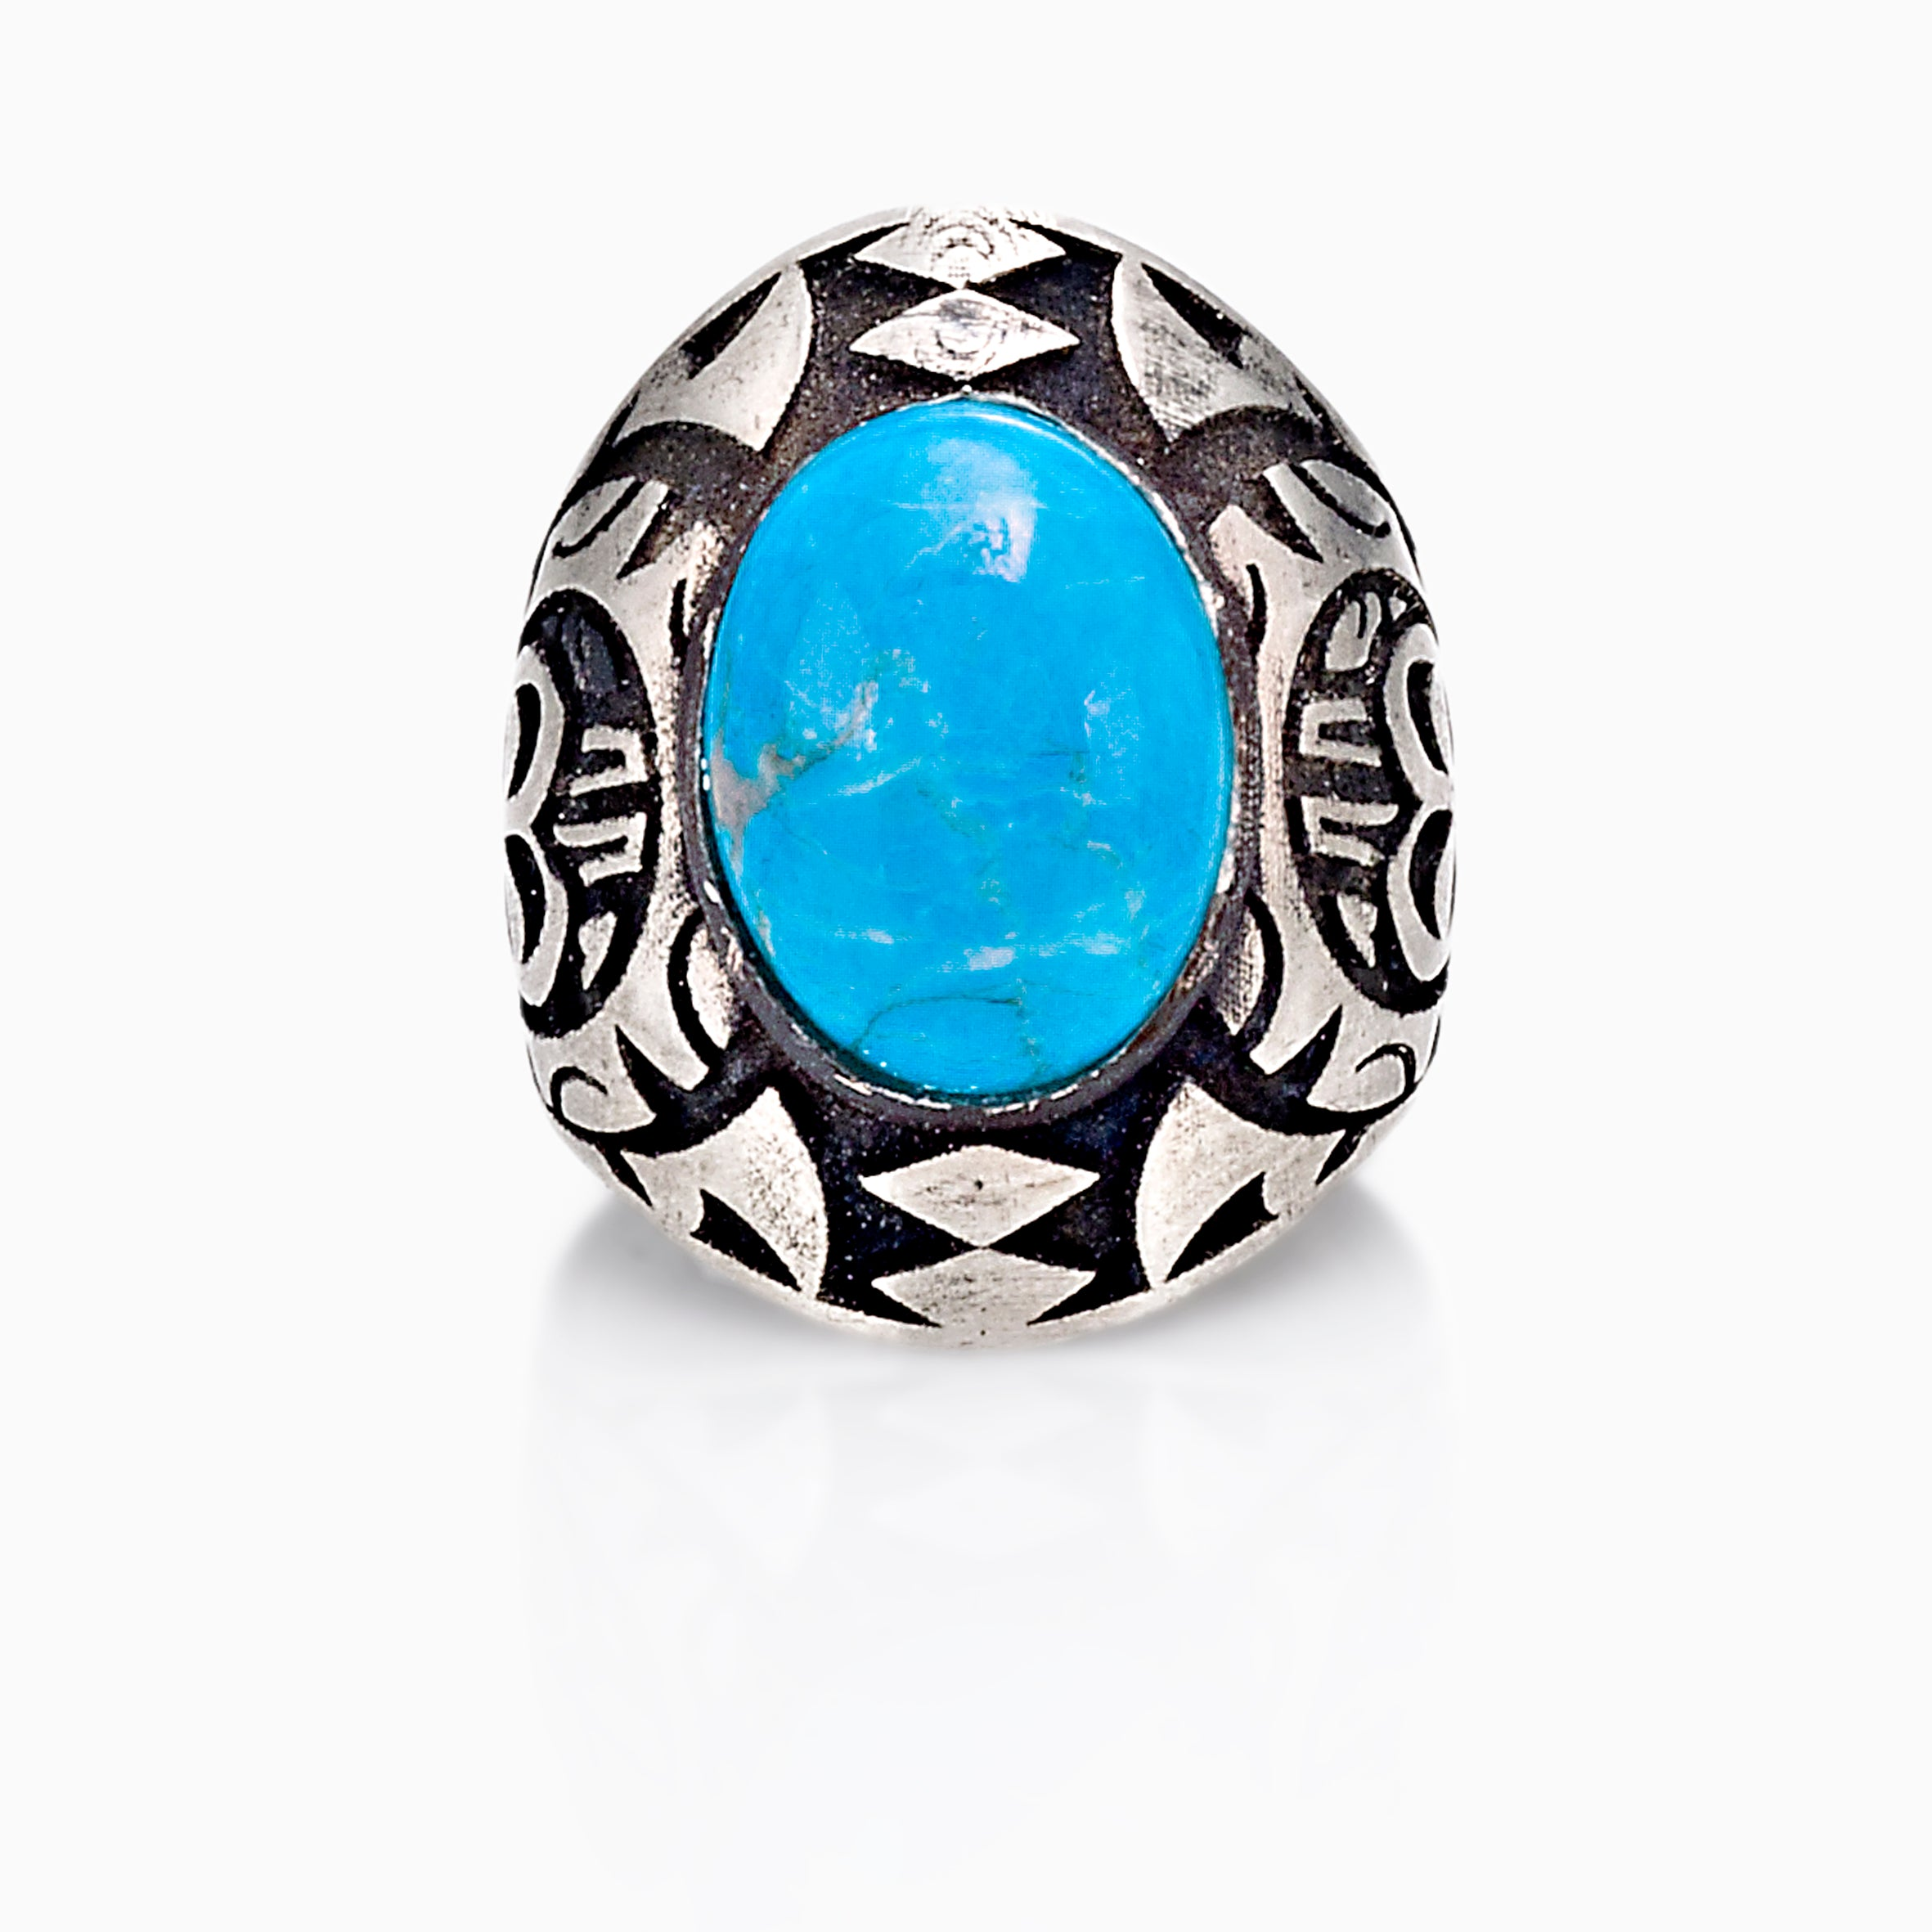 If your man is a little more daring,  you might consider a ring with a gemstone. It could be fun to shop for the male version of the cocktail ring, whether for daily wear or just for a special occasion. NOVICA carries a wide variety of men's jewelry especially rings with stones: tiger's eye, onyx, turquoise, they are all so pretty, yet masculine.